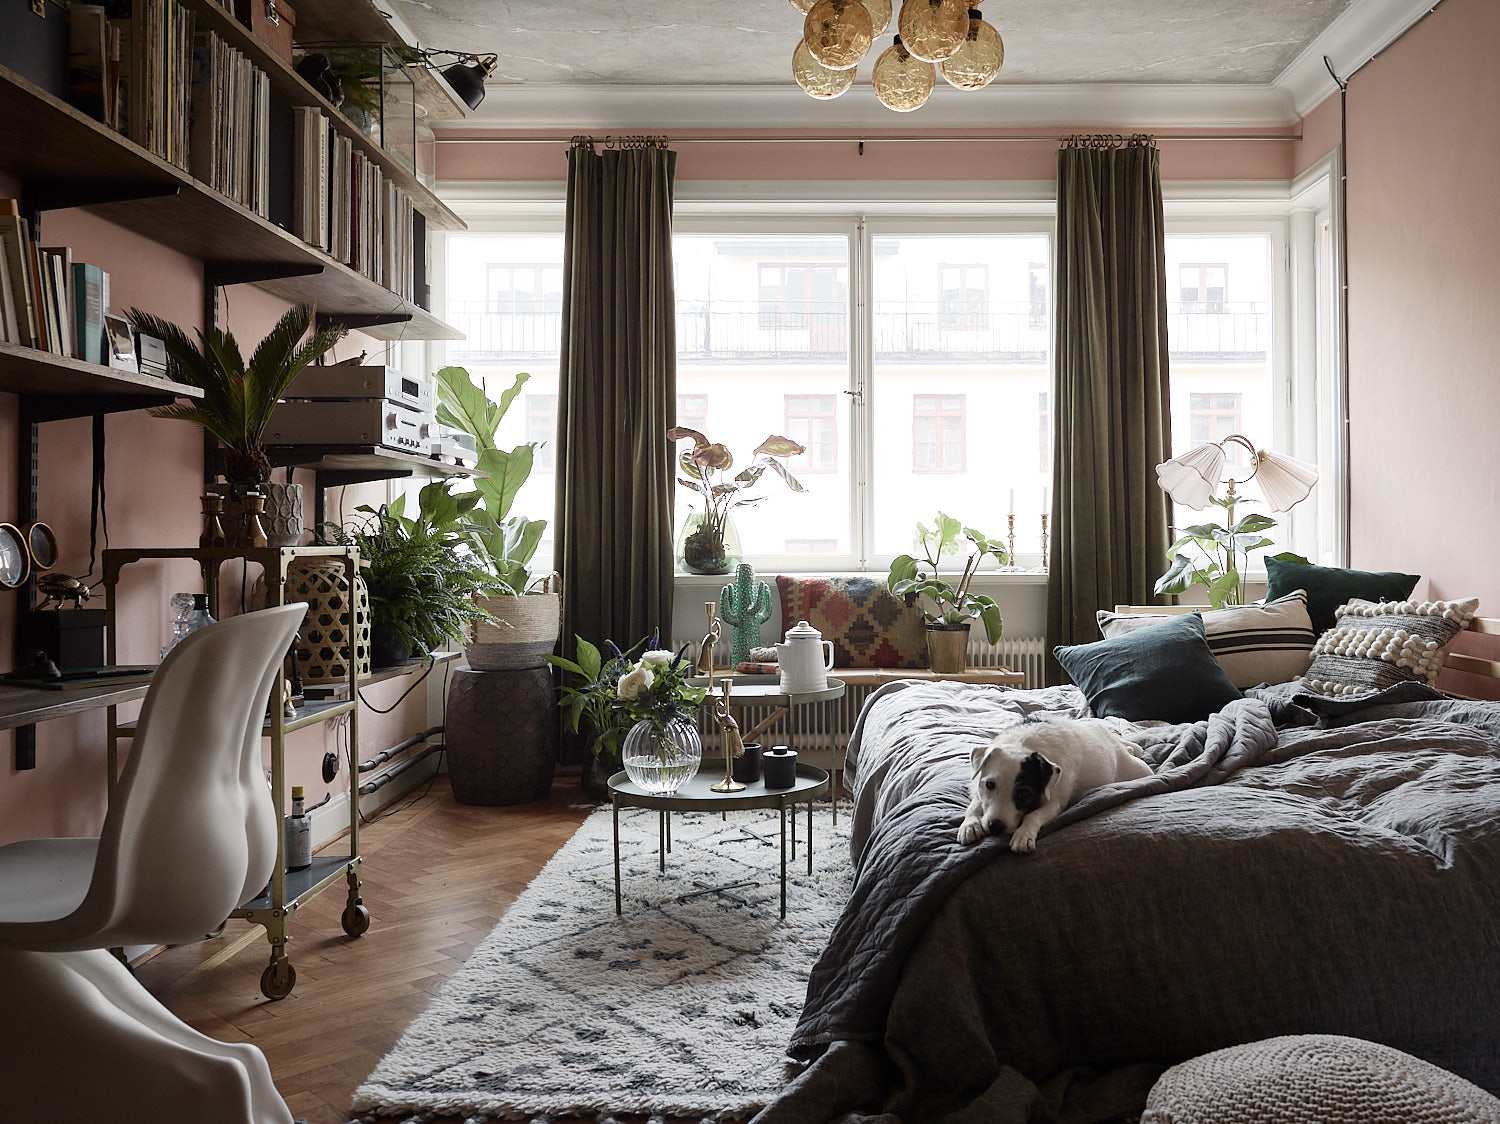 3. Plants are an Inexpensive Way to Fill A Room